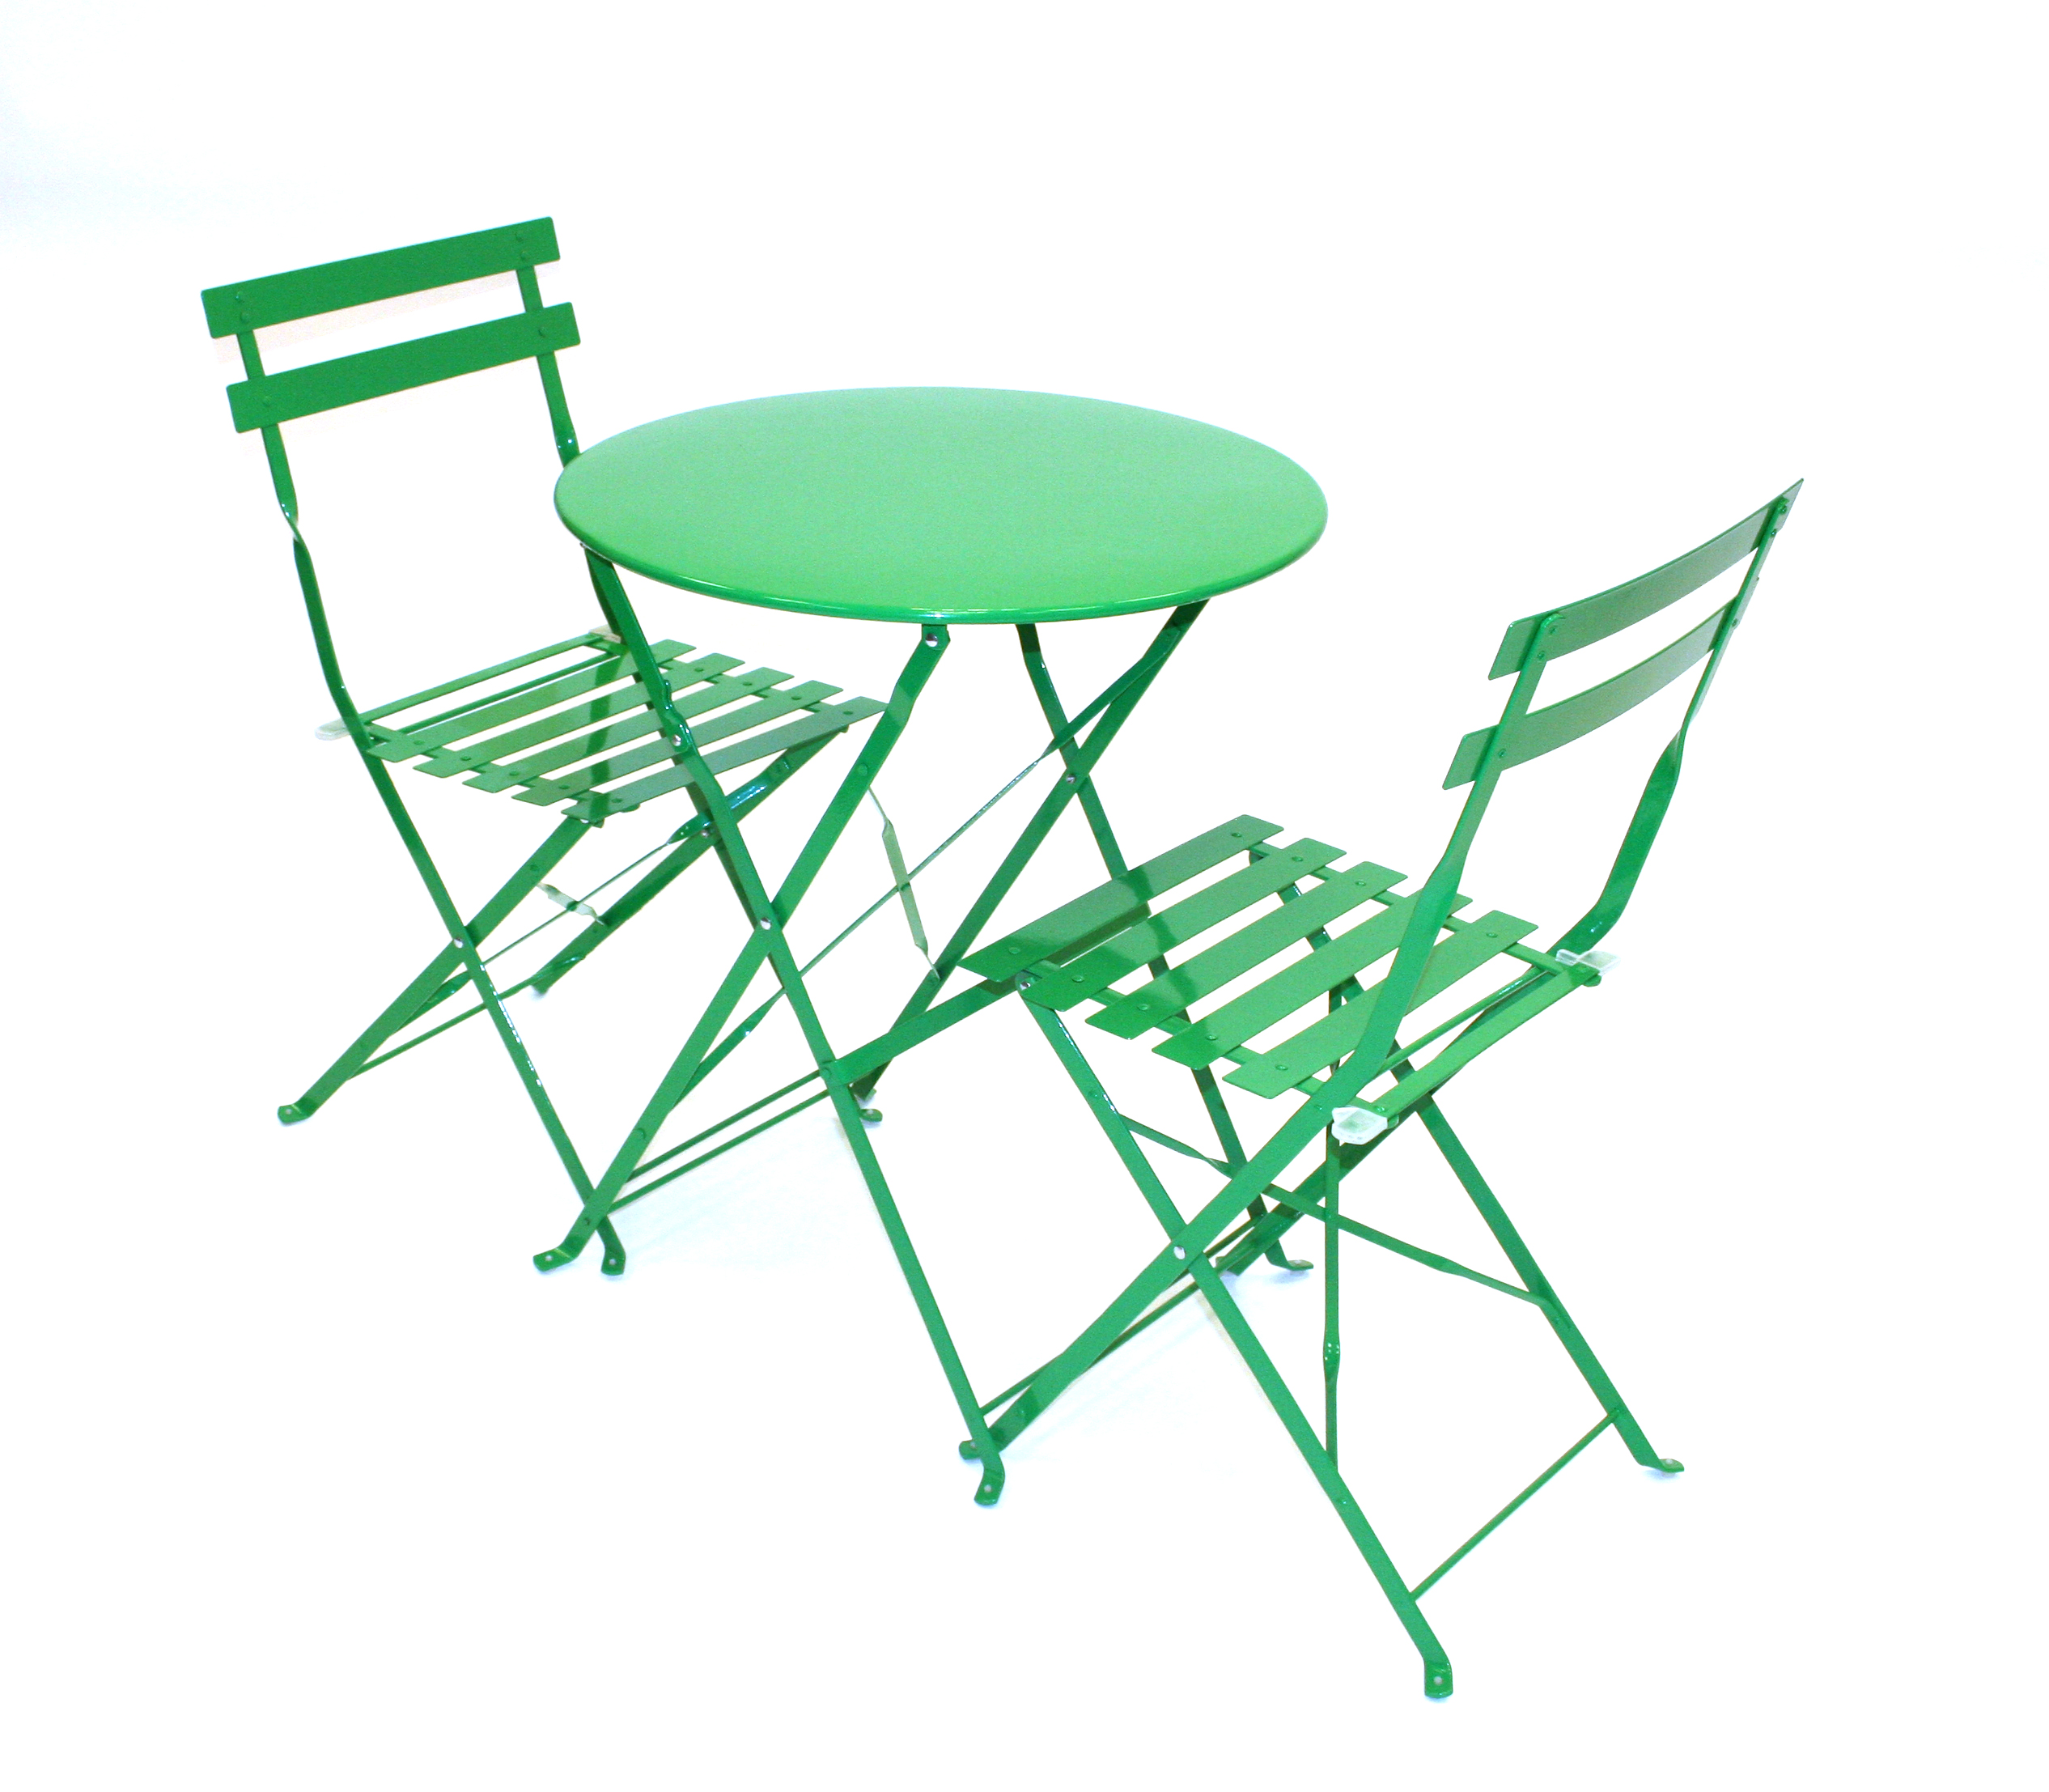 green metal bistro chairs wicker patio lounge set cafe s restaurants home be furniture sales folding balcony table and chair event hire